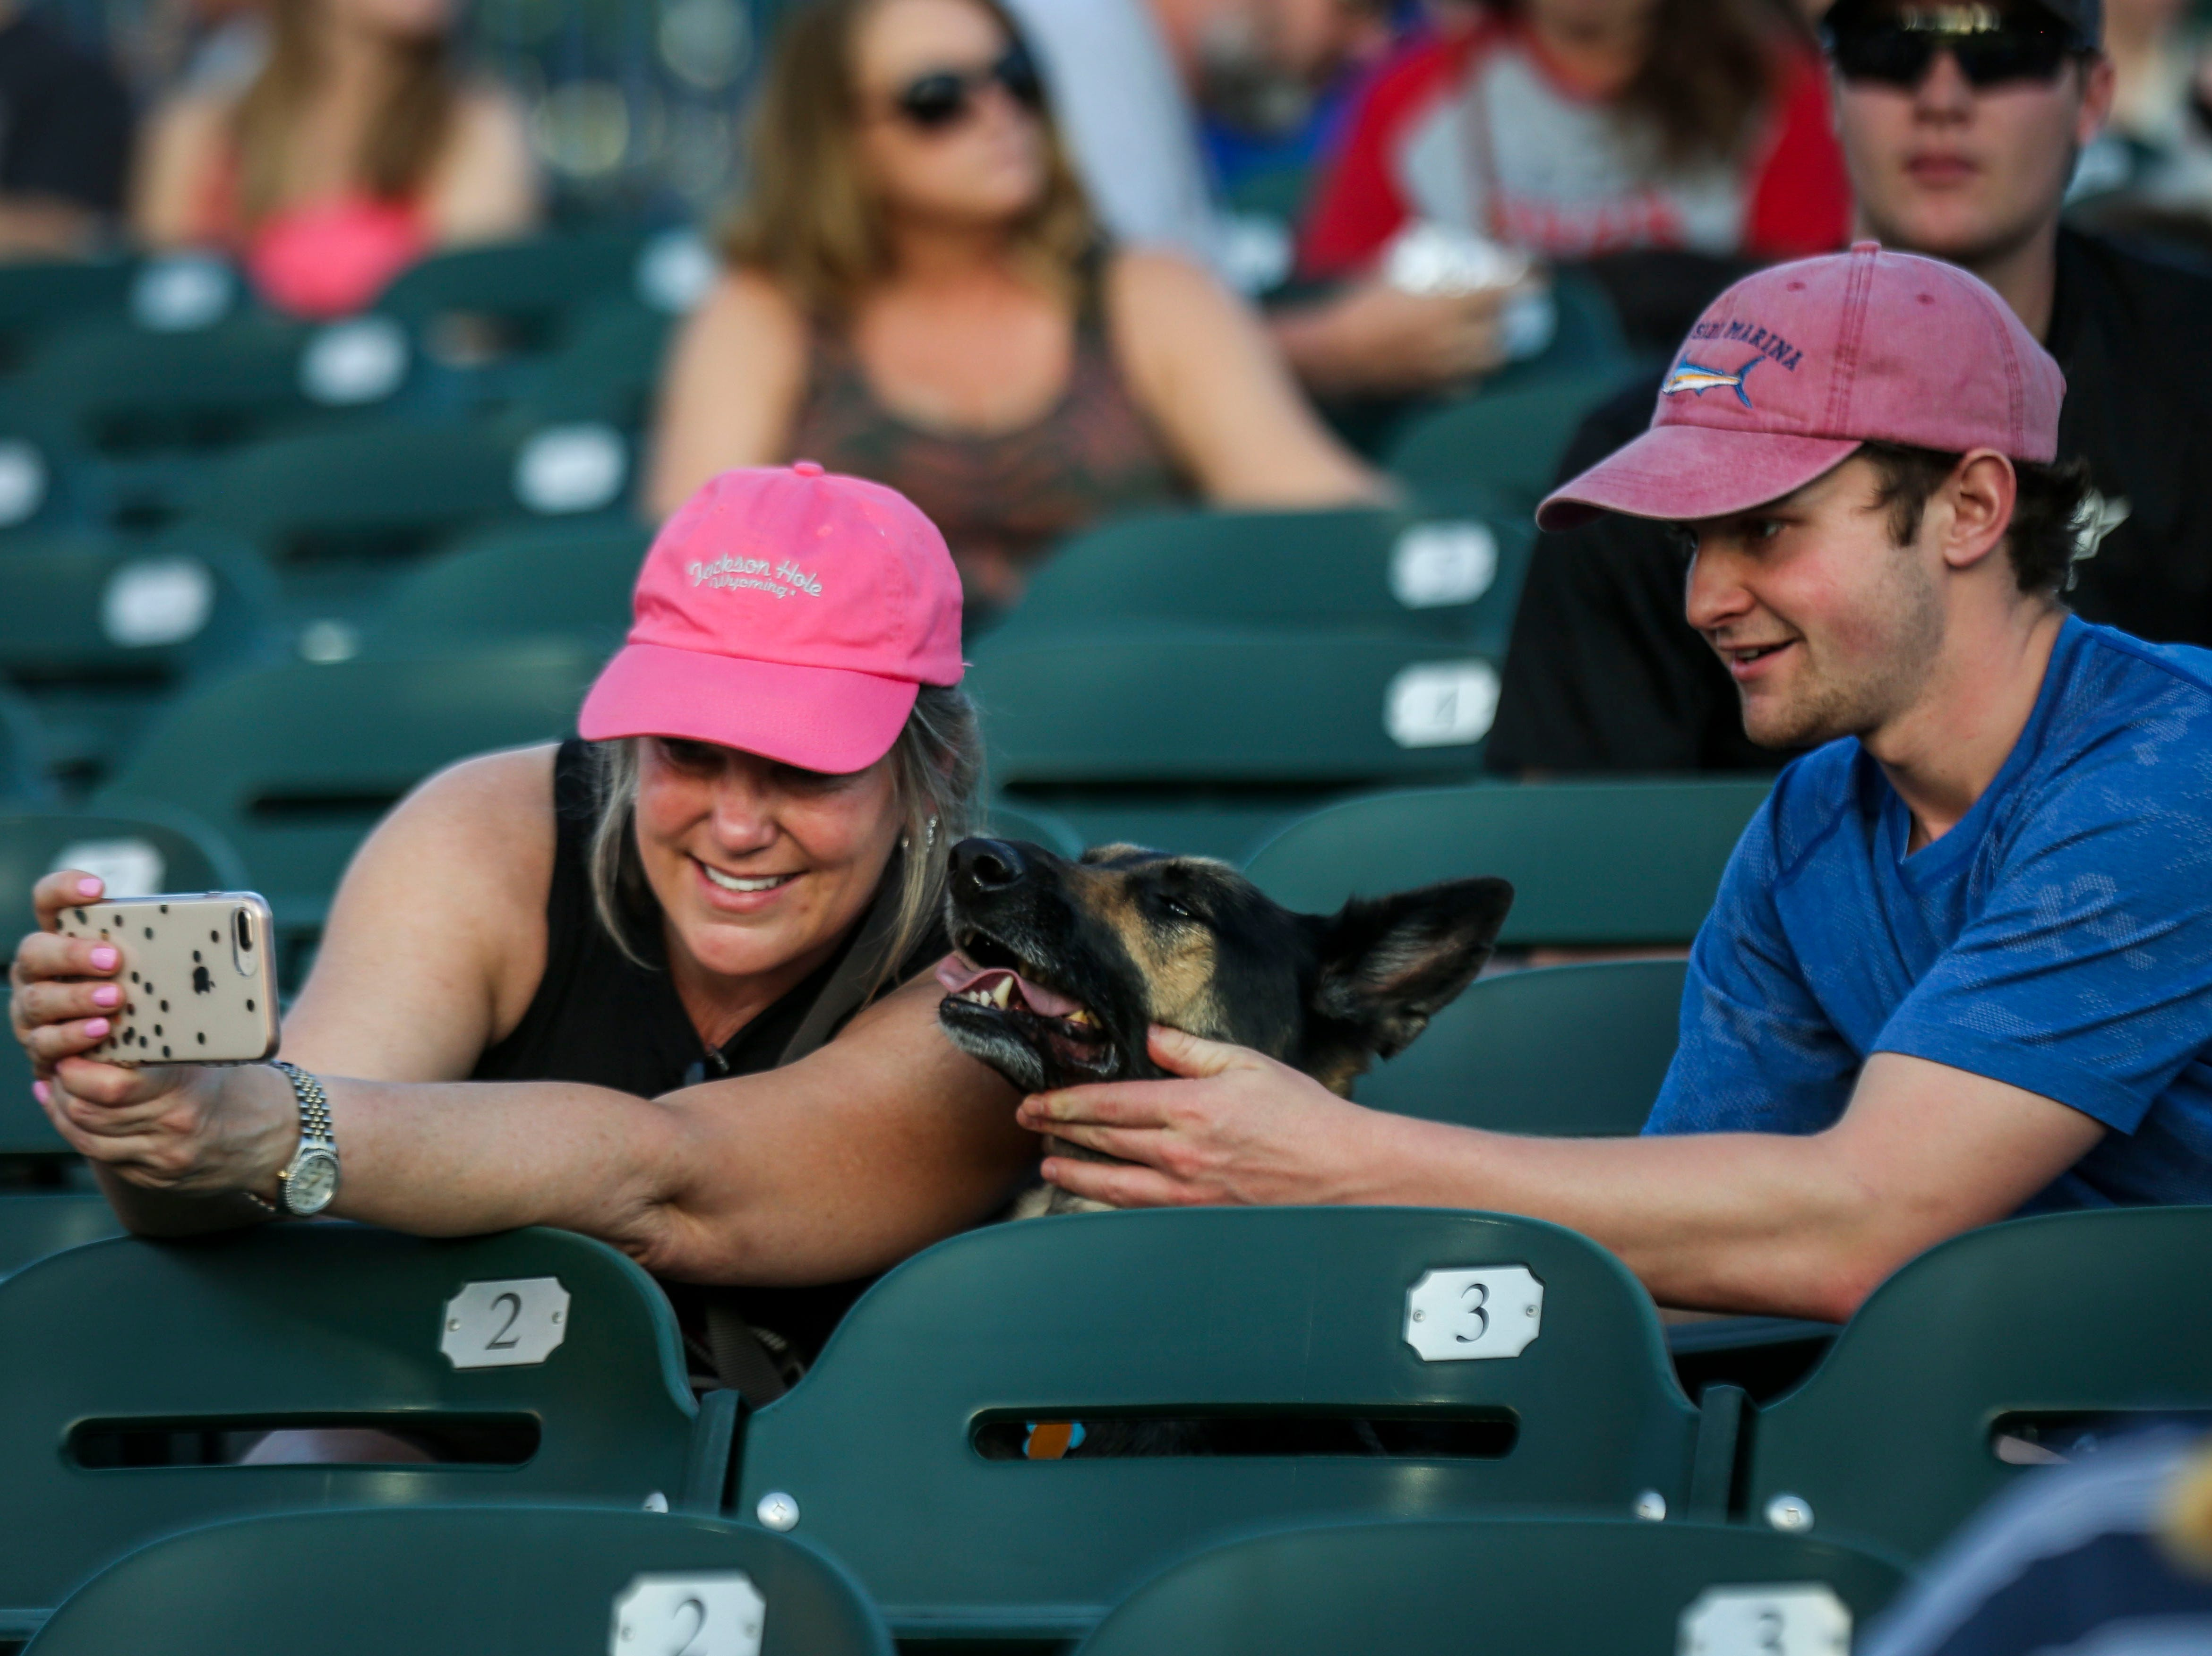 Mitchell Gordon helps Angela Gordon take a selfie with Heidi the German Shepard during the Louisville Bats v. Syracuse Mets game during Dog Day Nights at Louisville Slugger Field in downtown Louisville, Ky. on Tuesday, May 7, 2019.